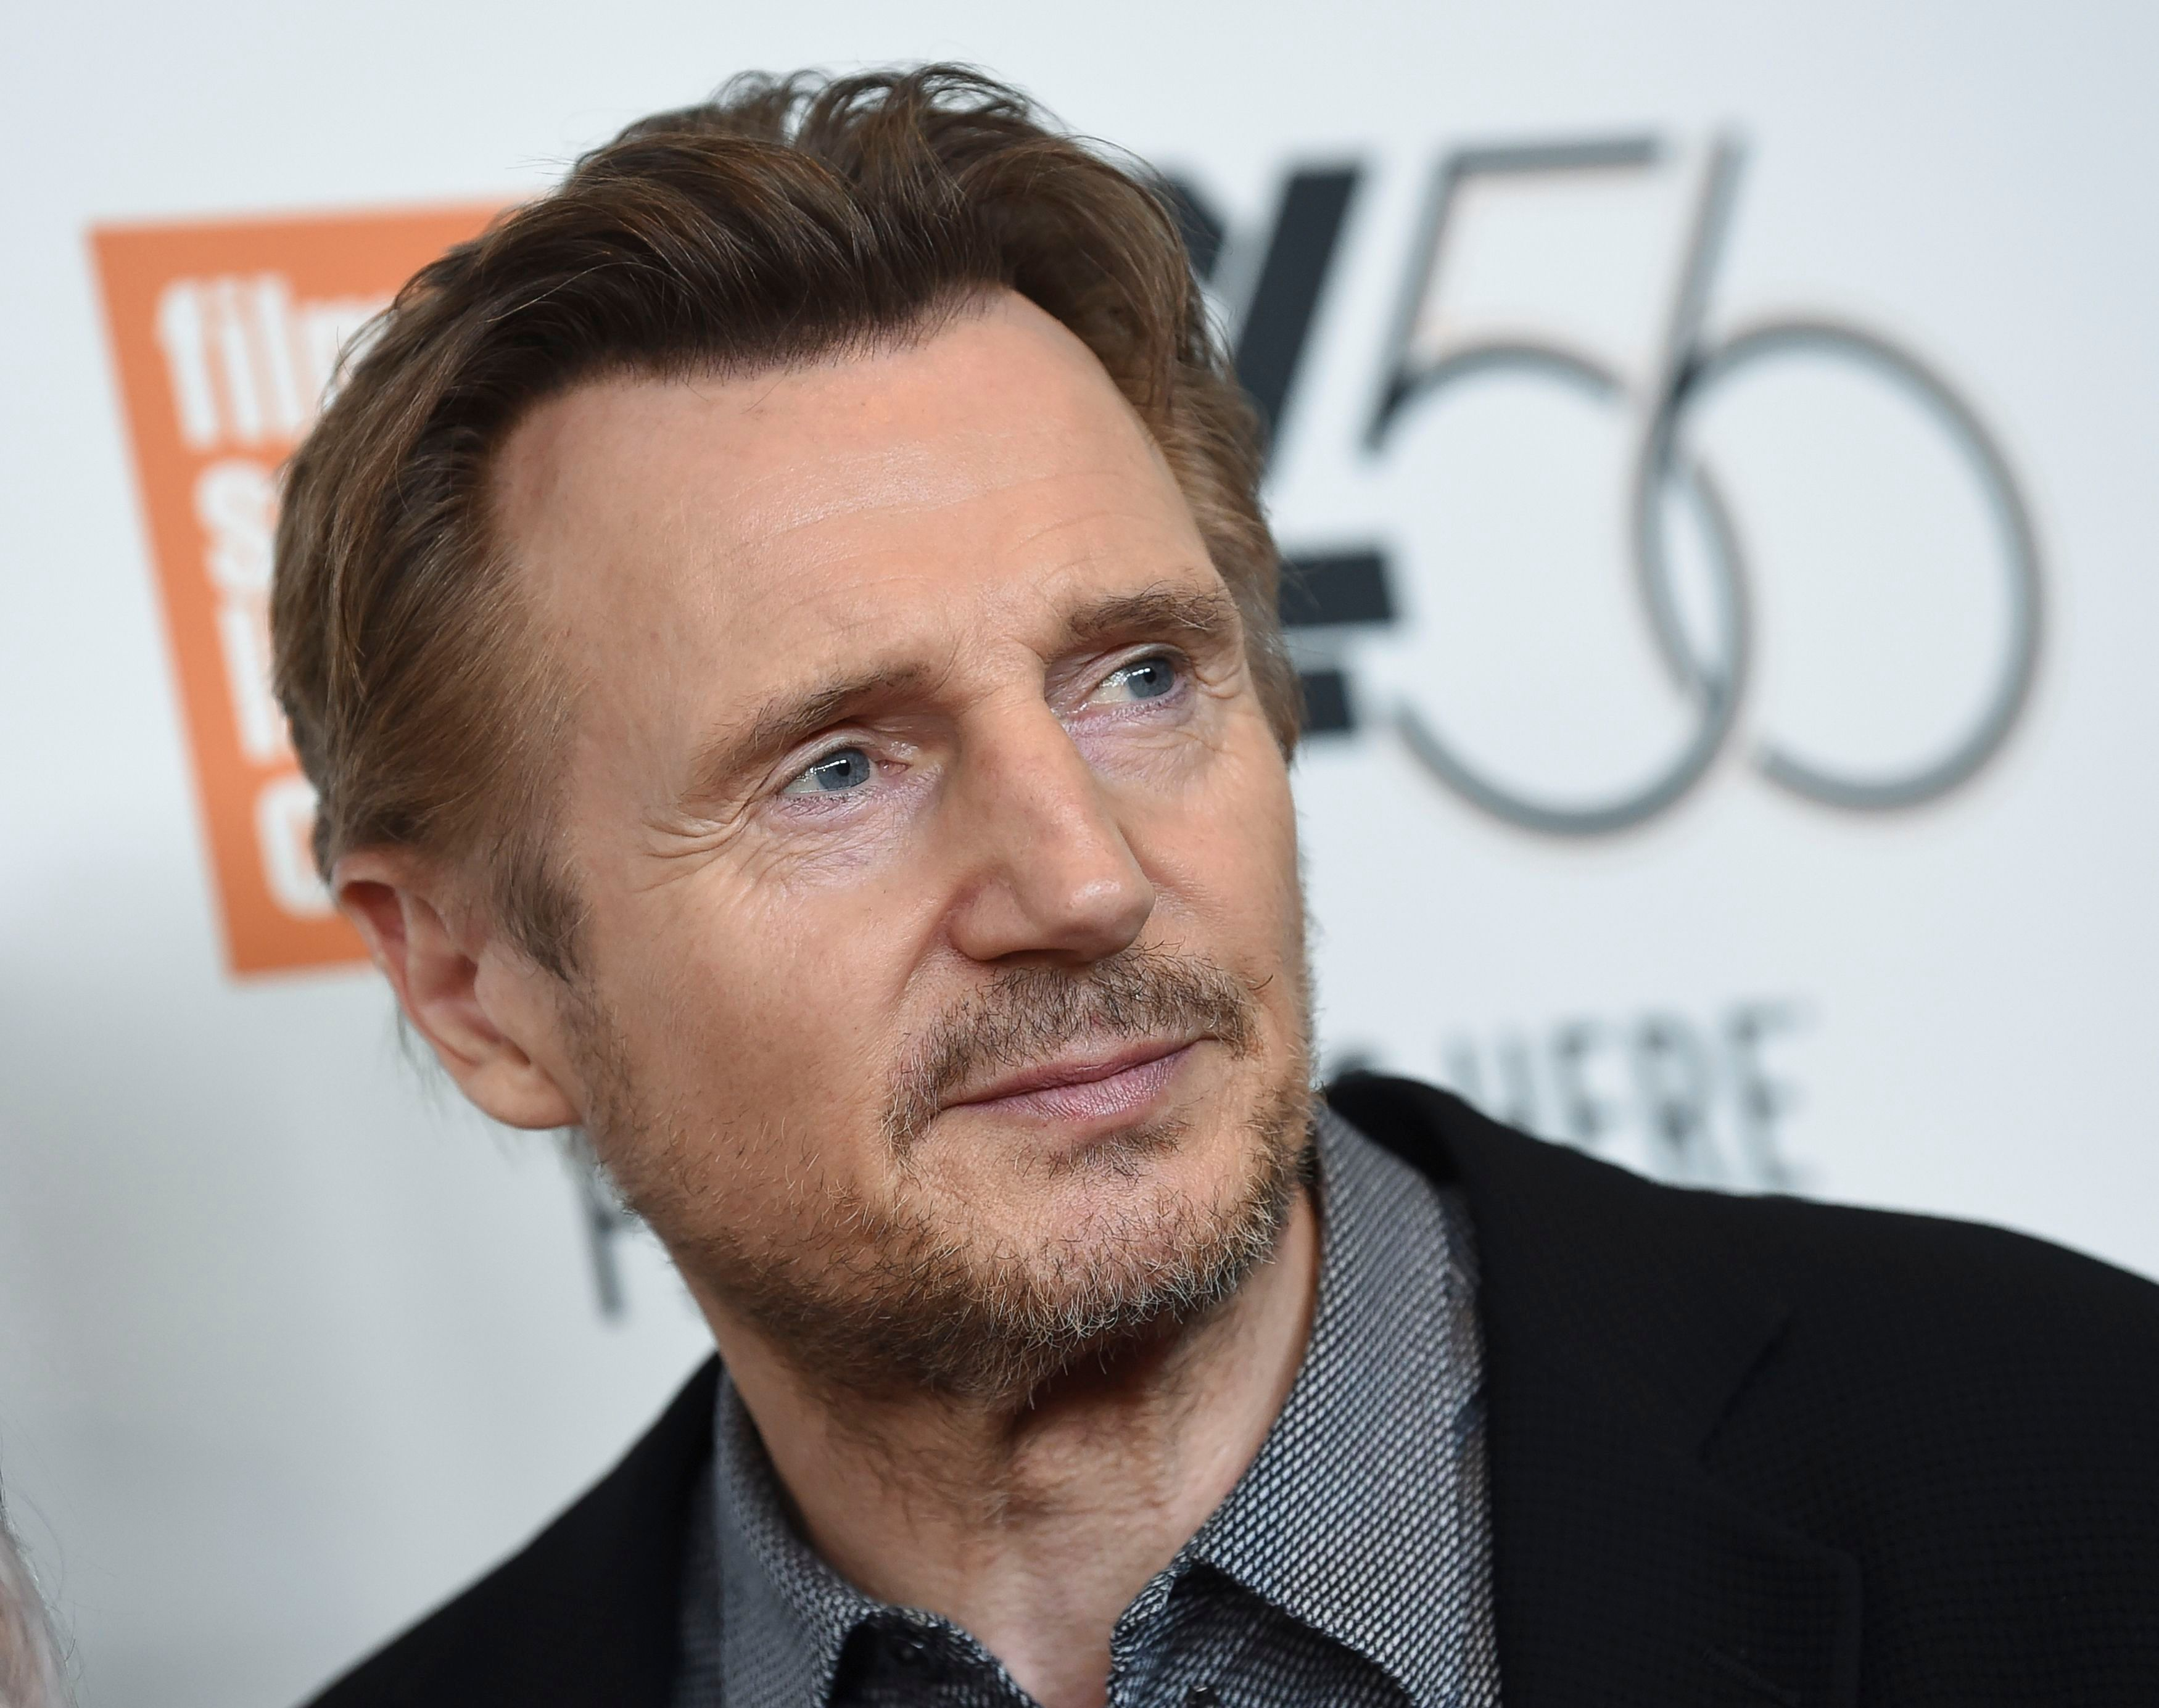 Liam Neeson 'Profoundly Apologizes' After Sparking Racism Controversy